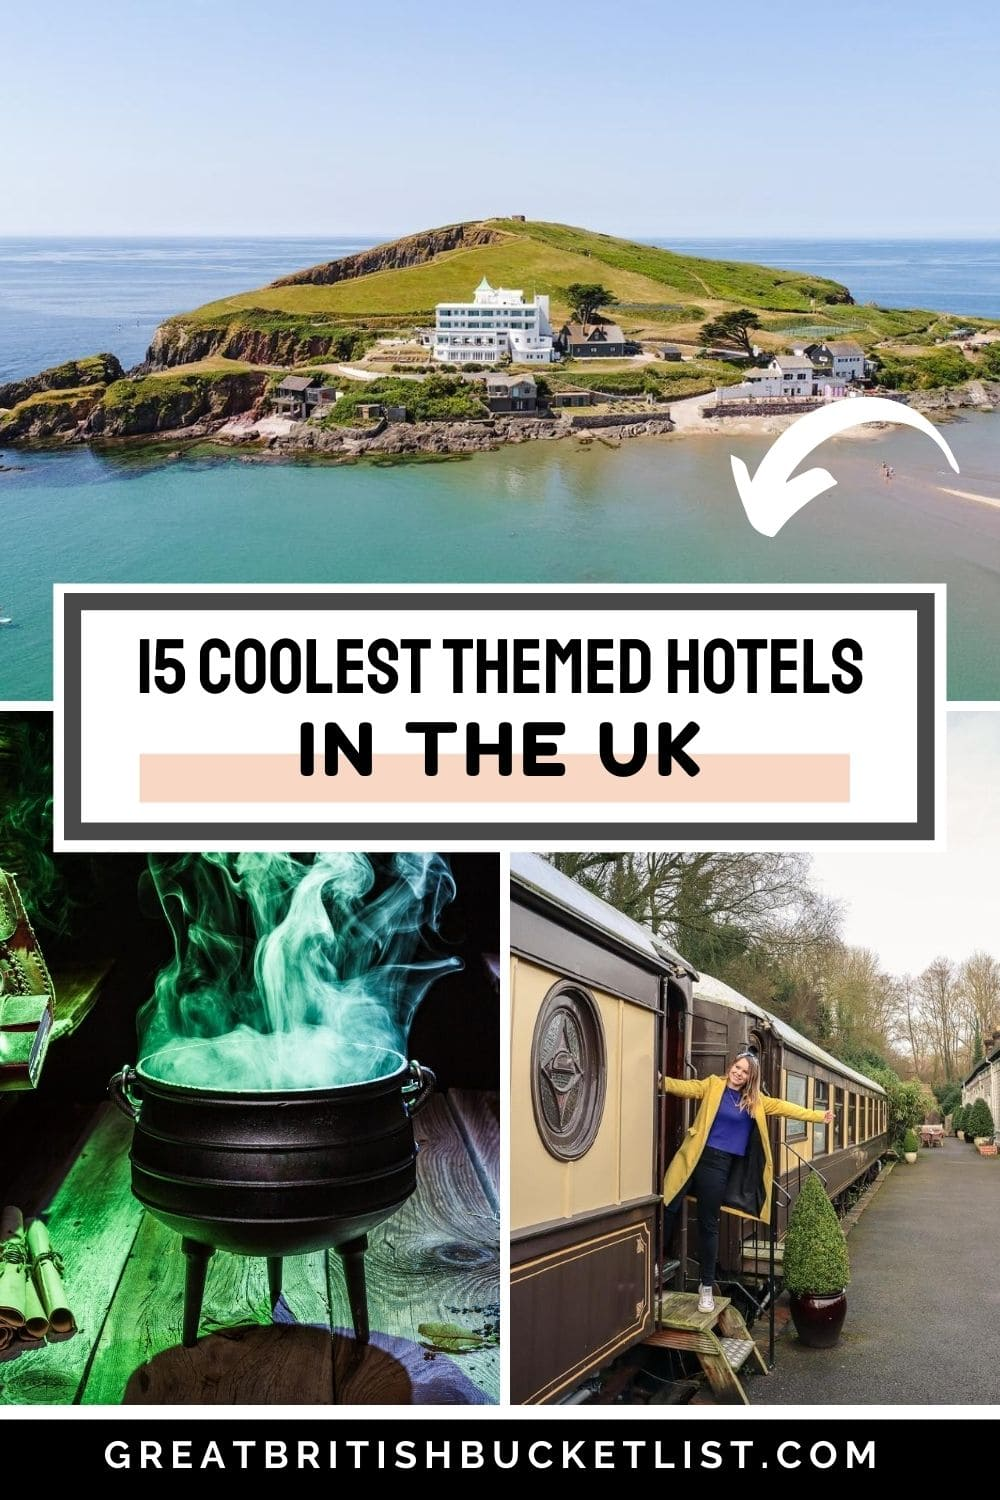 Coolest themed hotels in the UK